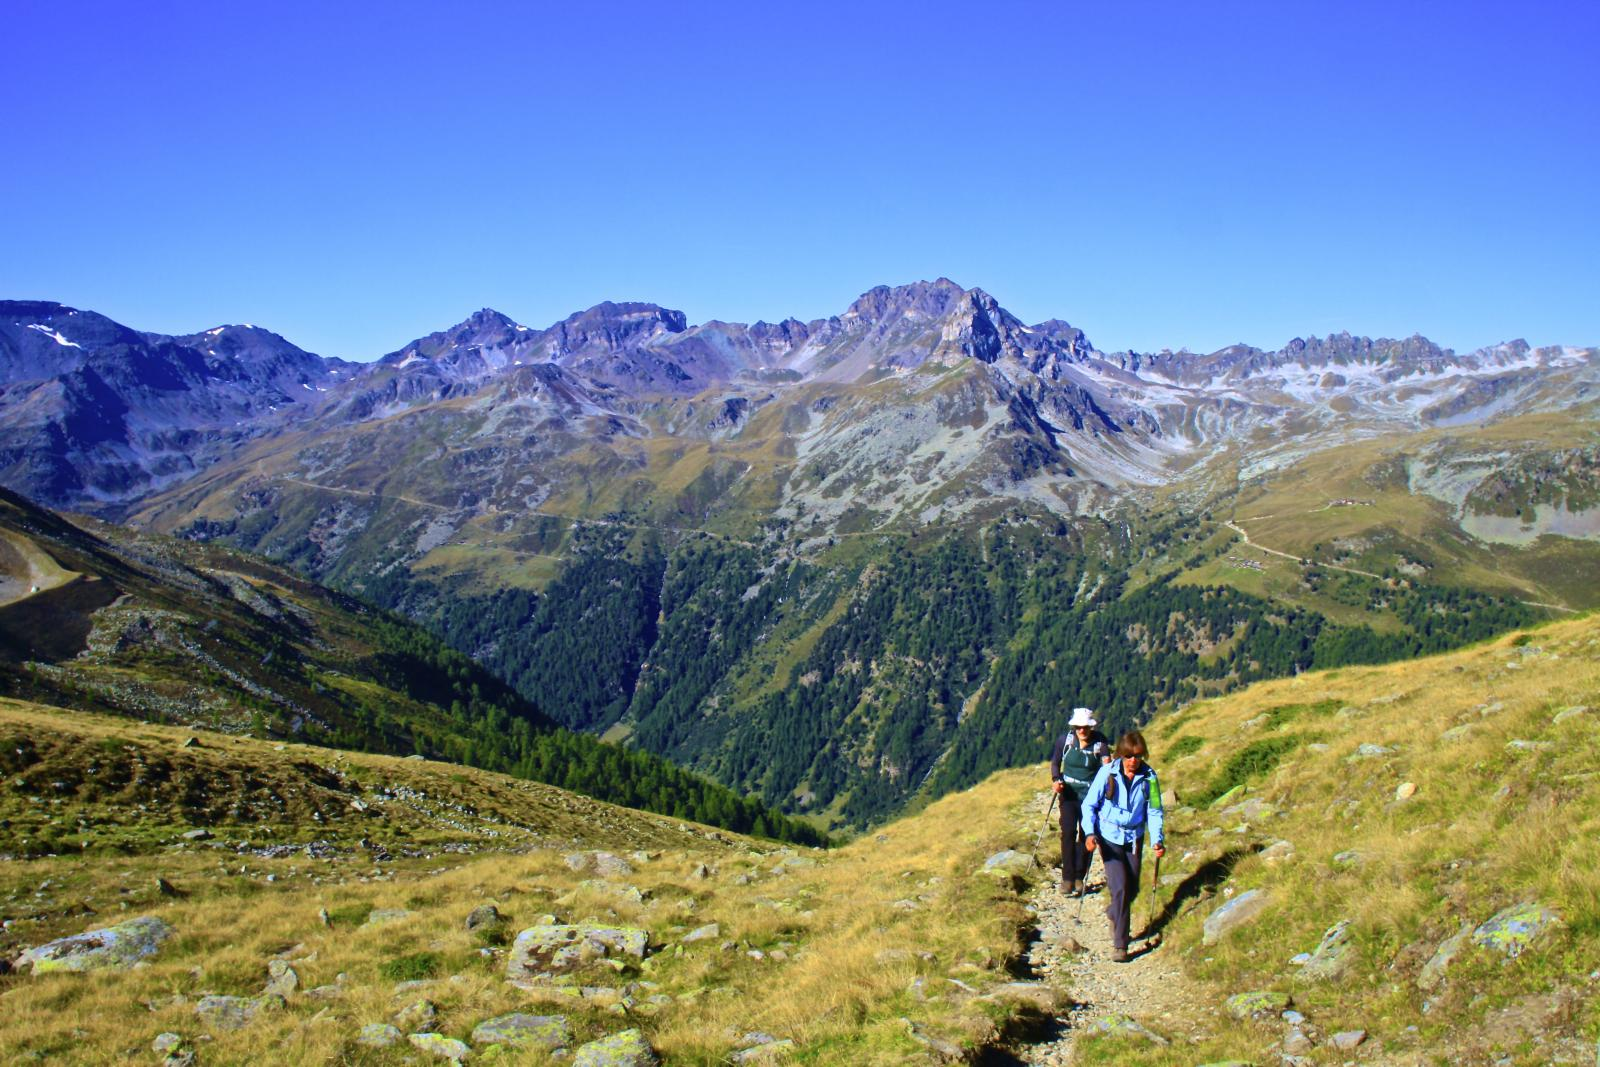 Hikers in the Swiss Alps